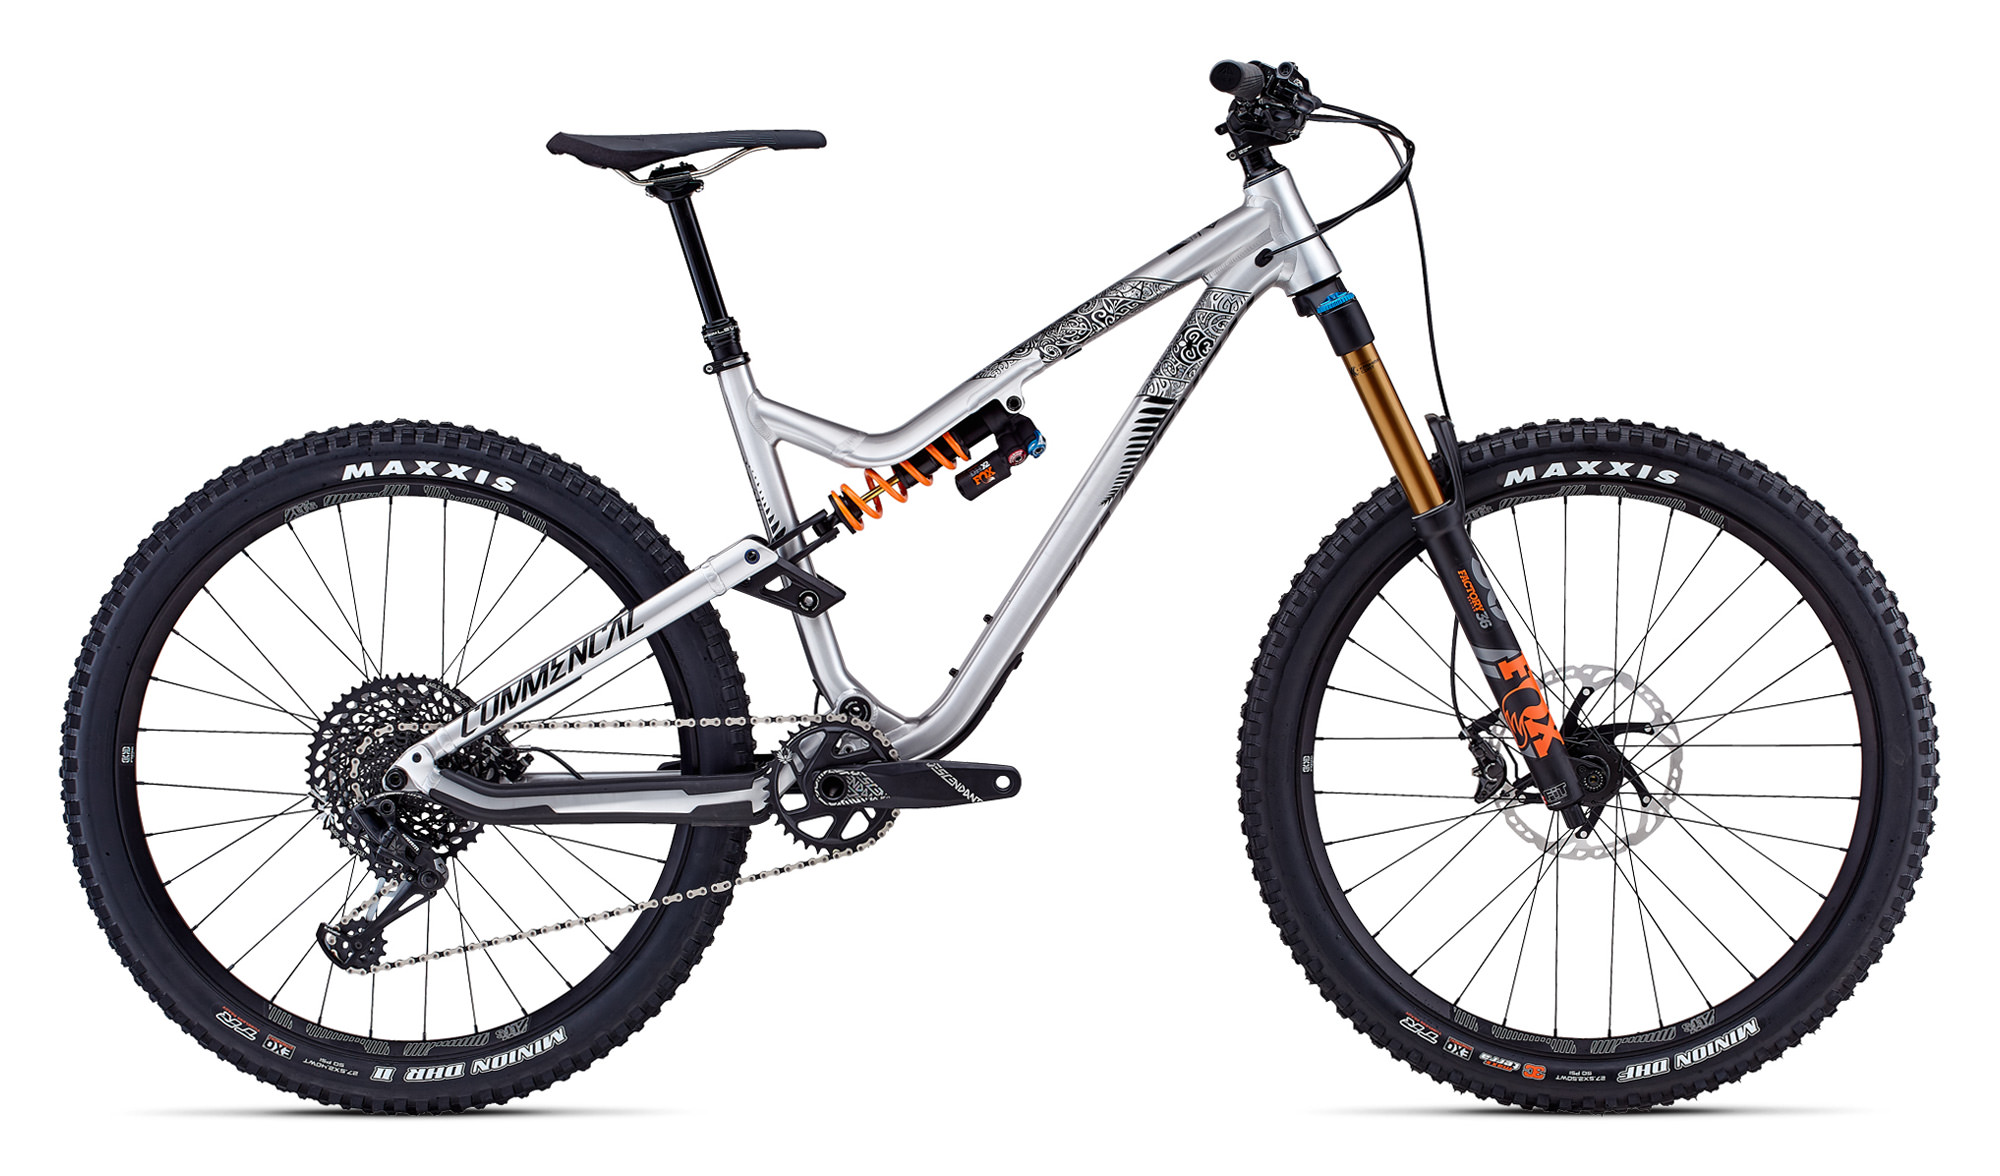 Montecore 3 moreover Meta Am V42 New Zealand 650b Brushed 2018 C2x22591355 further 2012 10 01 archive as well 47160772 What Are The Best Handlebars For Your Fixie furthermore Trek Marlin 6 Mountain Bike 2018. on bike parts